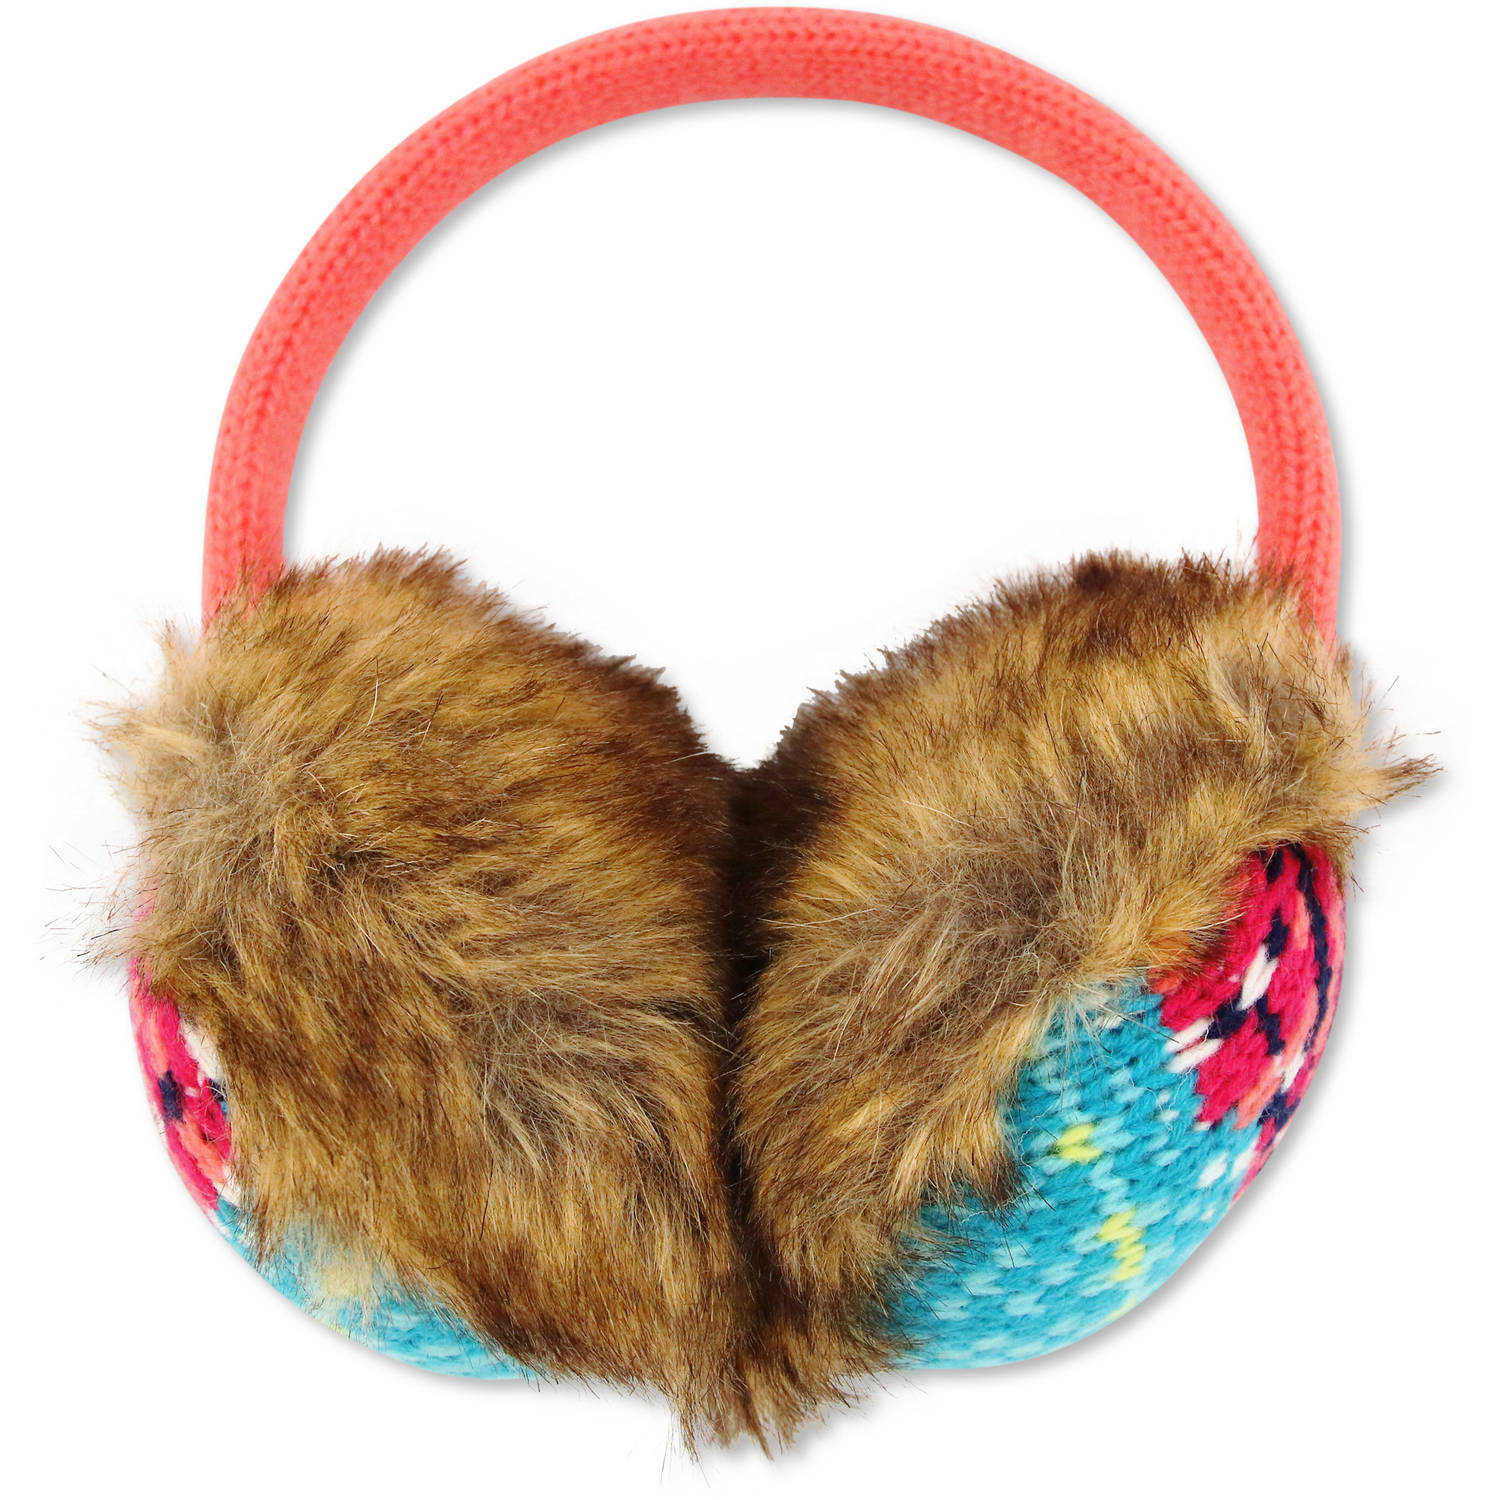 Image of ABG Accessories Girls Novelty Plush Faux Fur And Fair Isle Acrylic Knit Earmuff